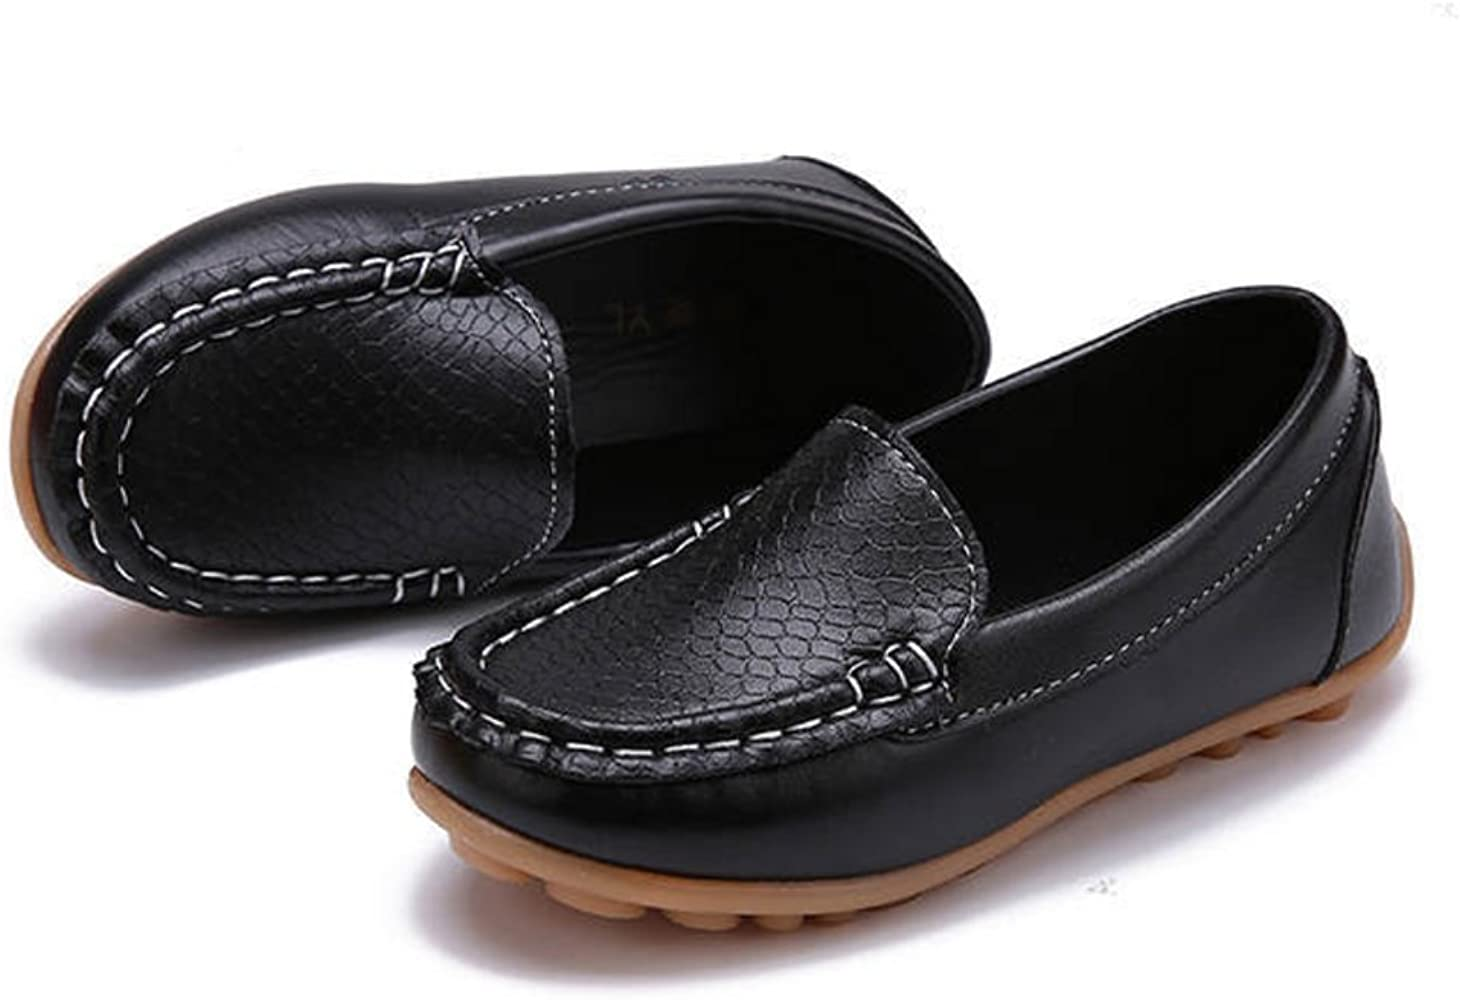 SOFMUO Toddler Boys Girls Suede Loafers Slip-On Boat Dress Flats Schooling Daily Casual Walking Shoes Toddler//Little Kid